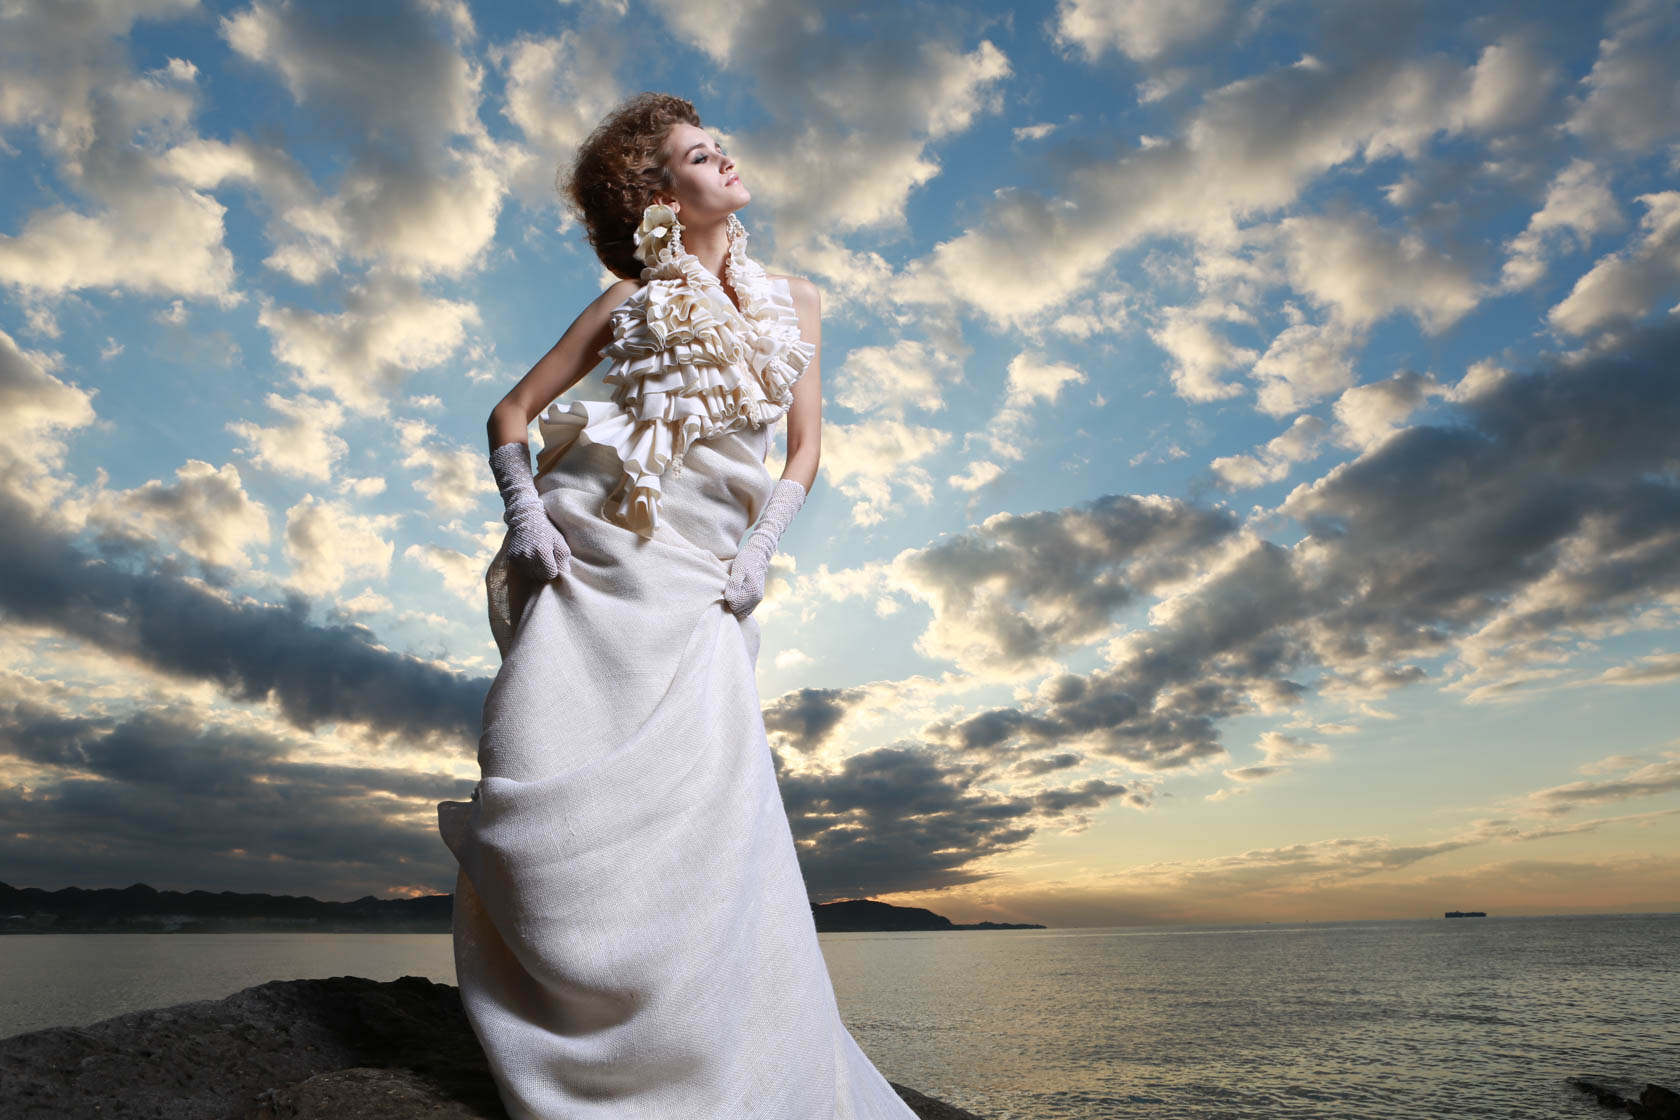 Model in white dress under clouds taken on Canon EOS 5D Mark III DSLR camera